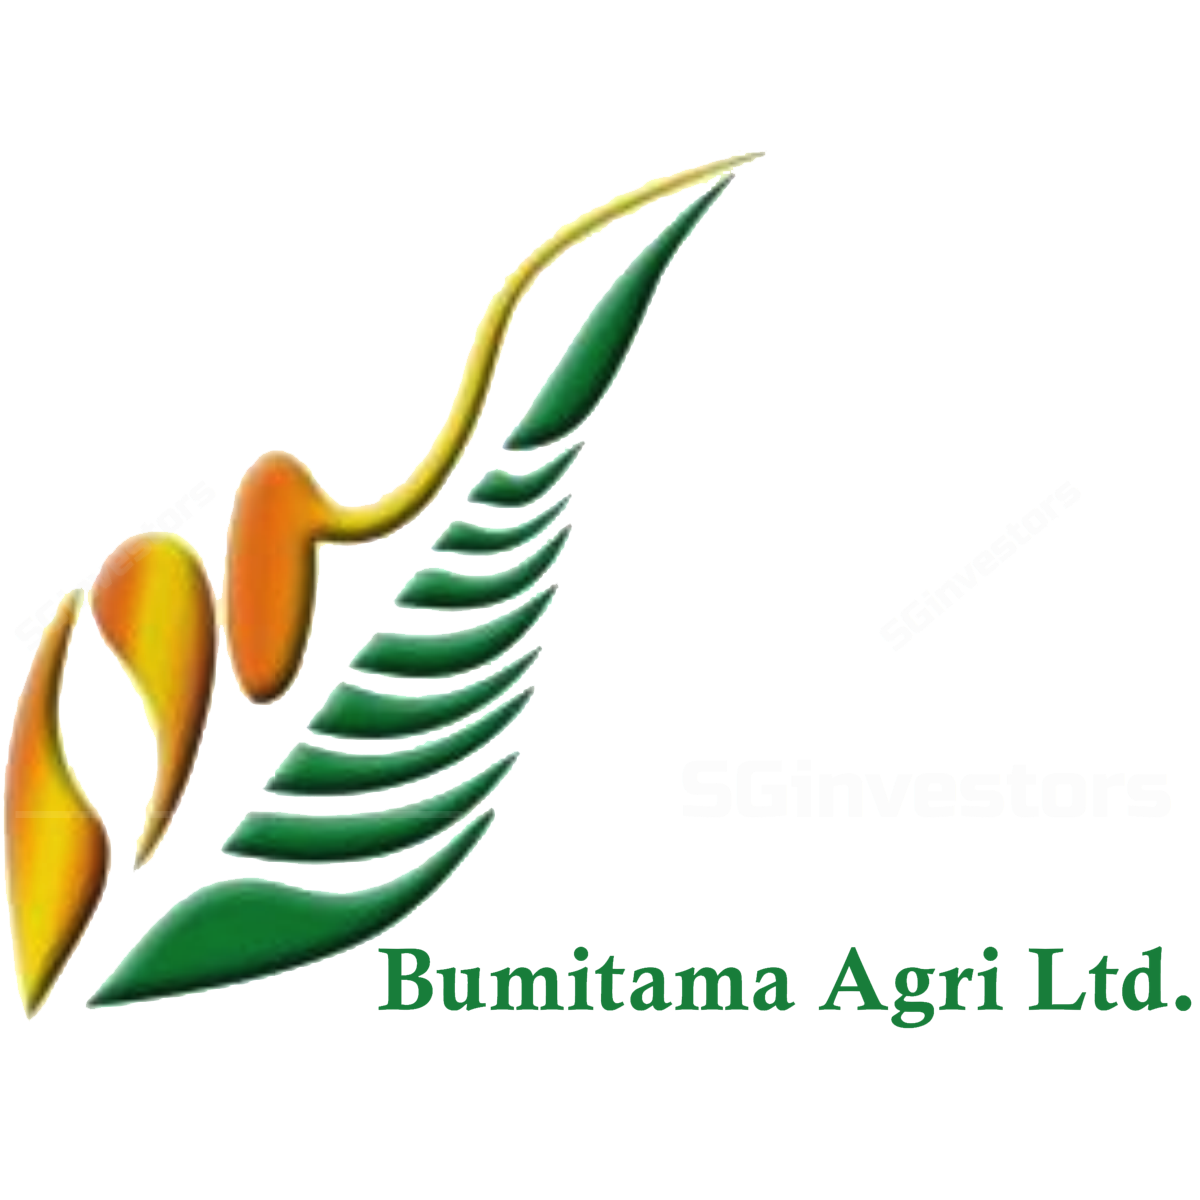 Bumitama Agri - DBS Vickers 2017-02-17: Strong growth ahead